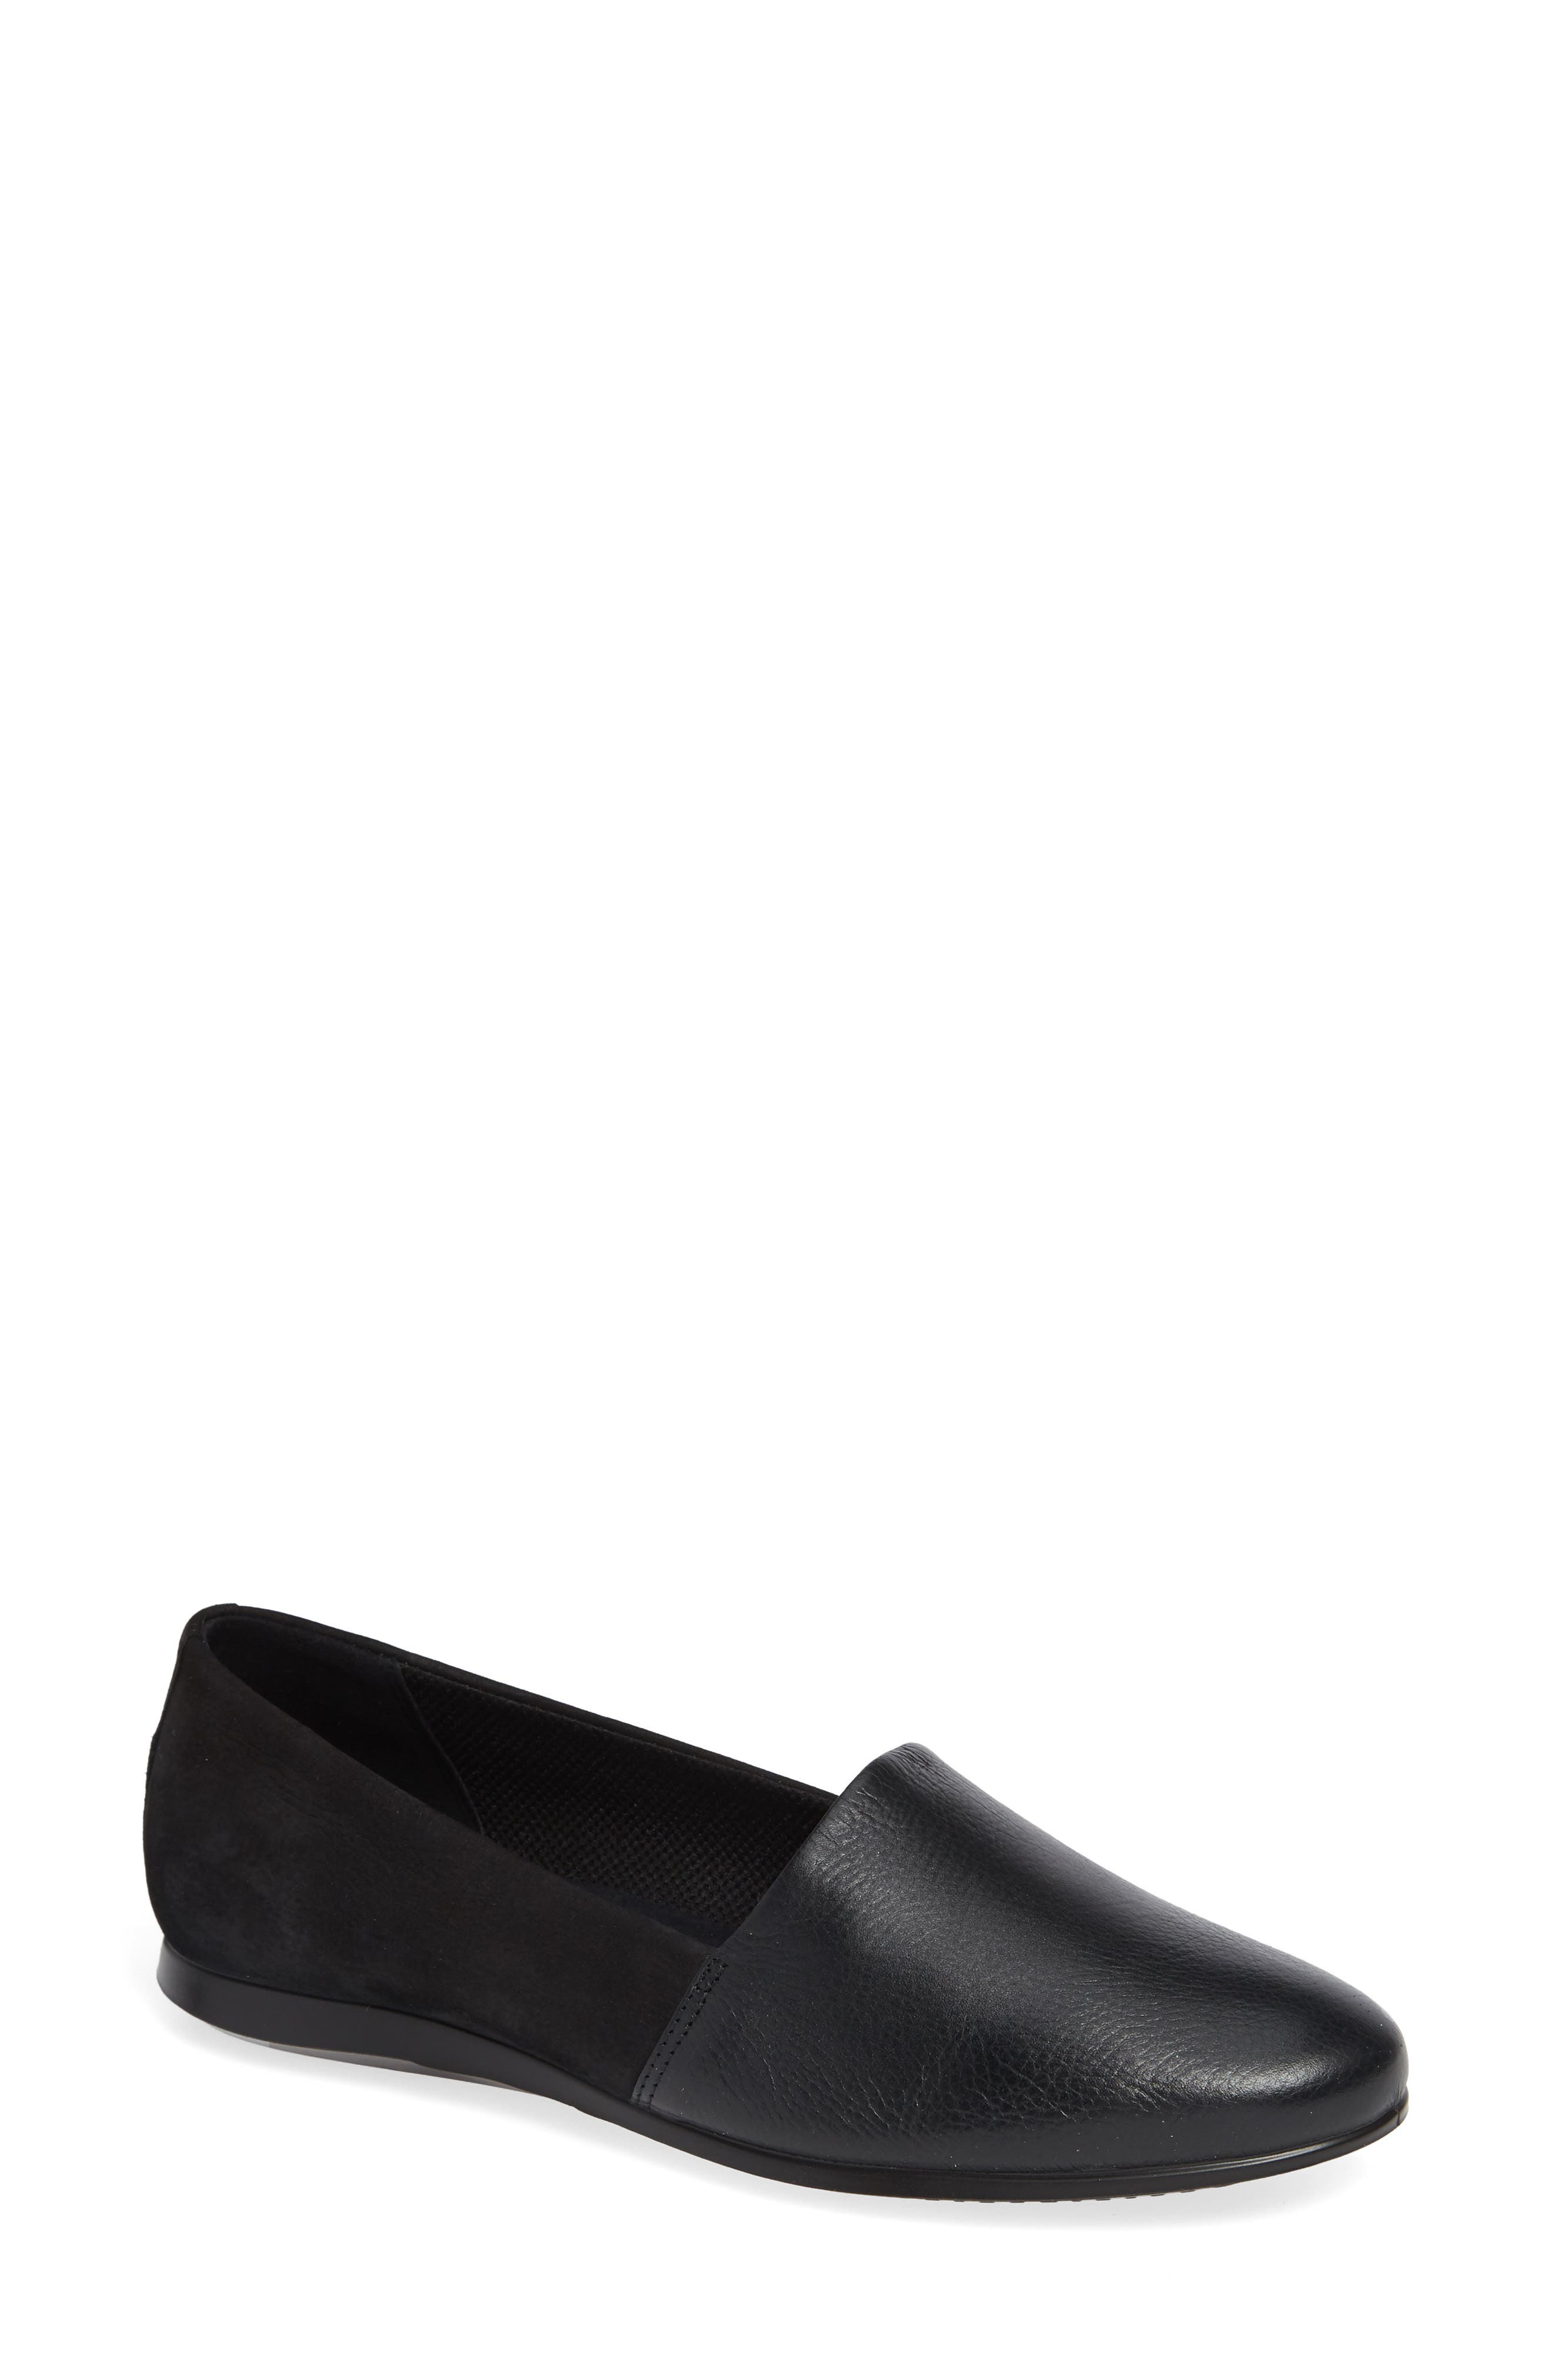 Touch Ballerina 2.0 Flat,                         Main,                         color, BLACK LEATHER